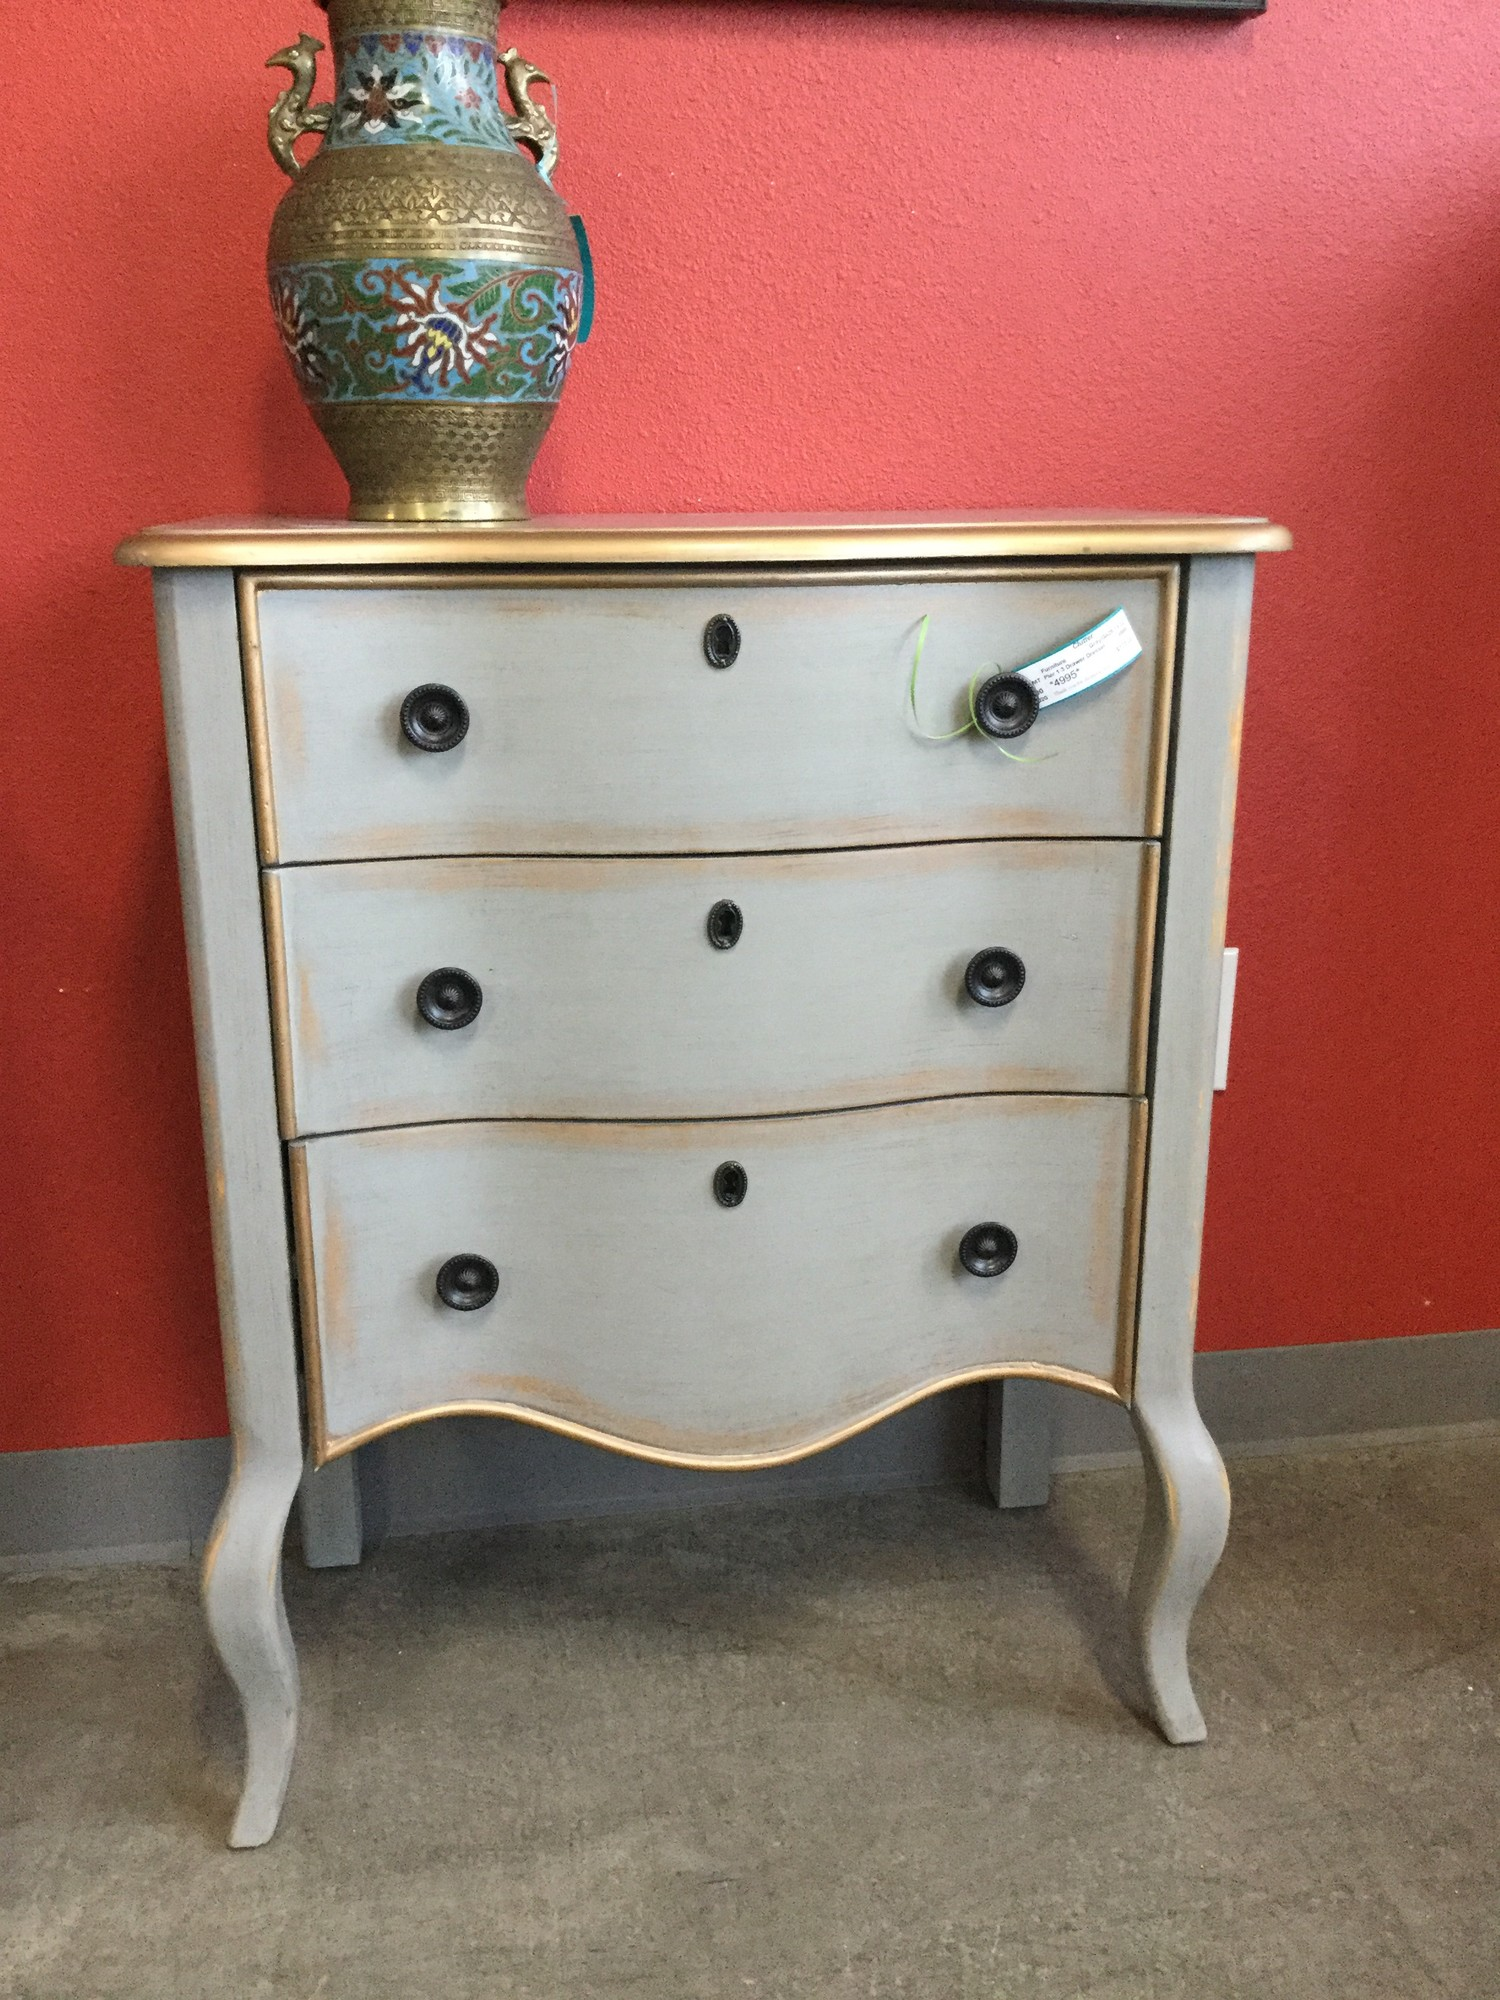 "Pier 1, 3 Drawer Dresser, Gray with Gold Trim, Size: 26""X14""X32"""